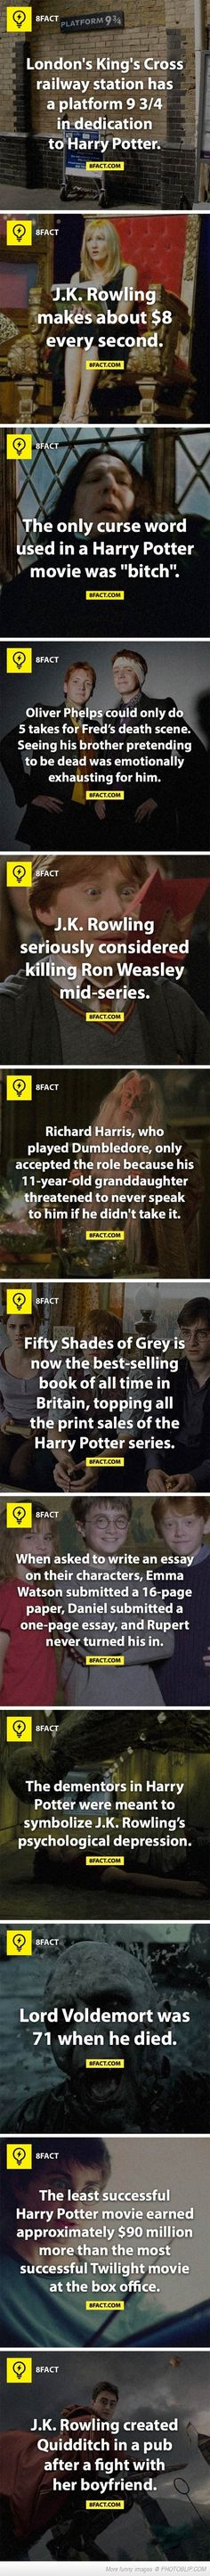 Some Harry Potter Facts